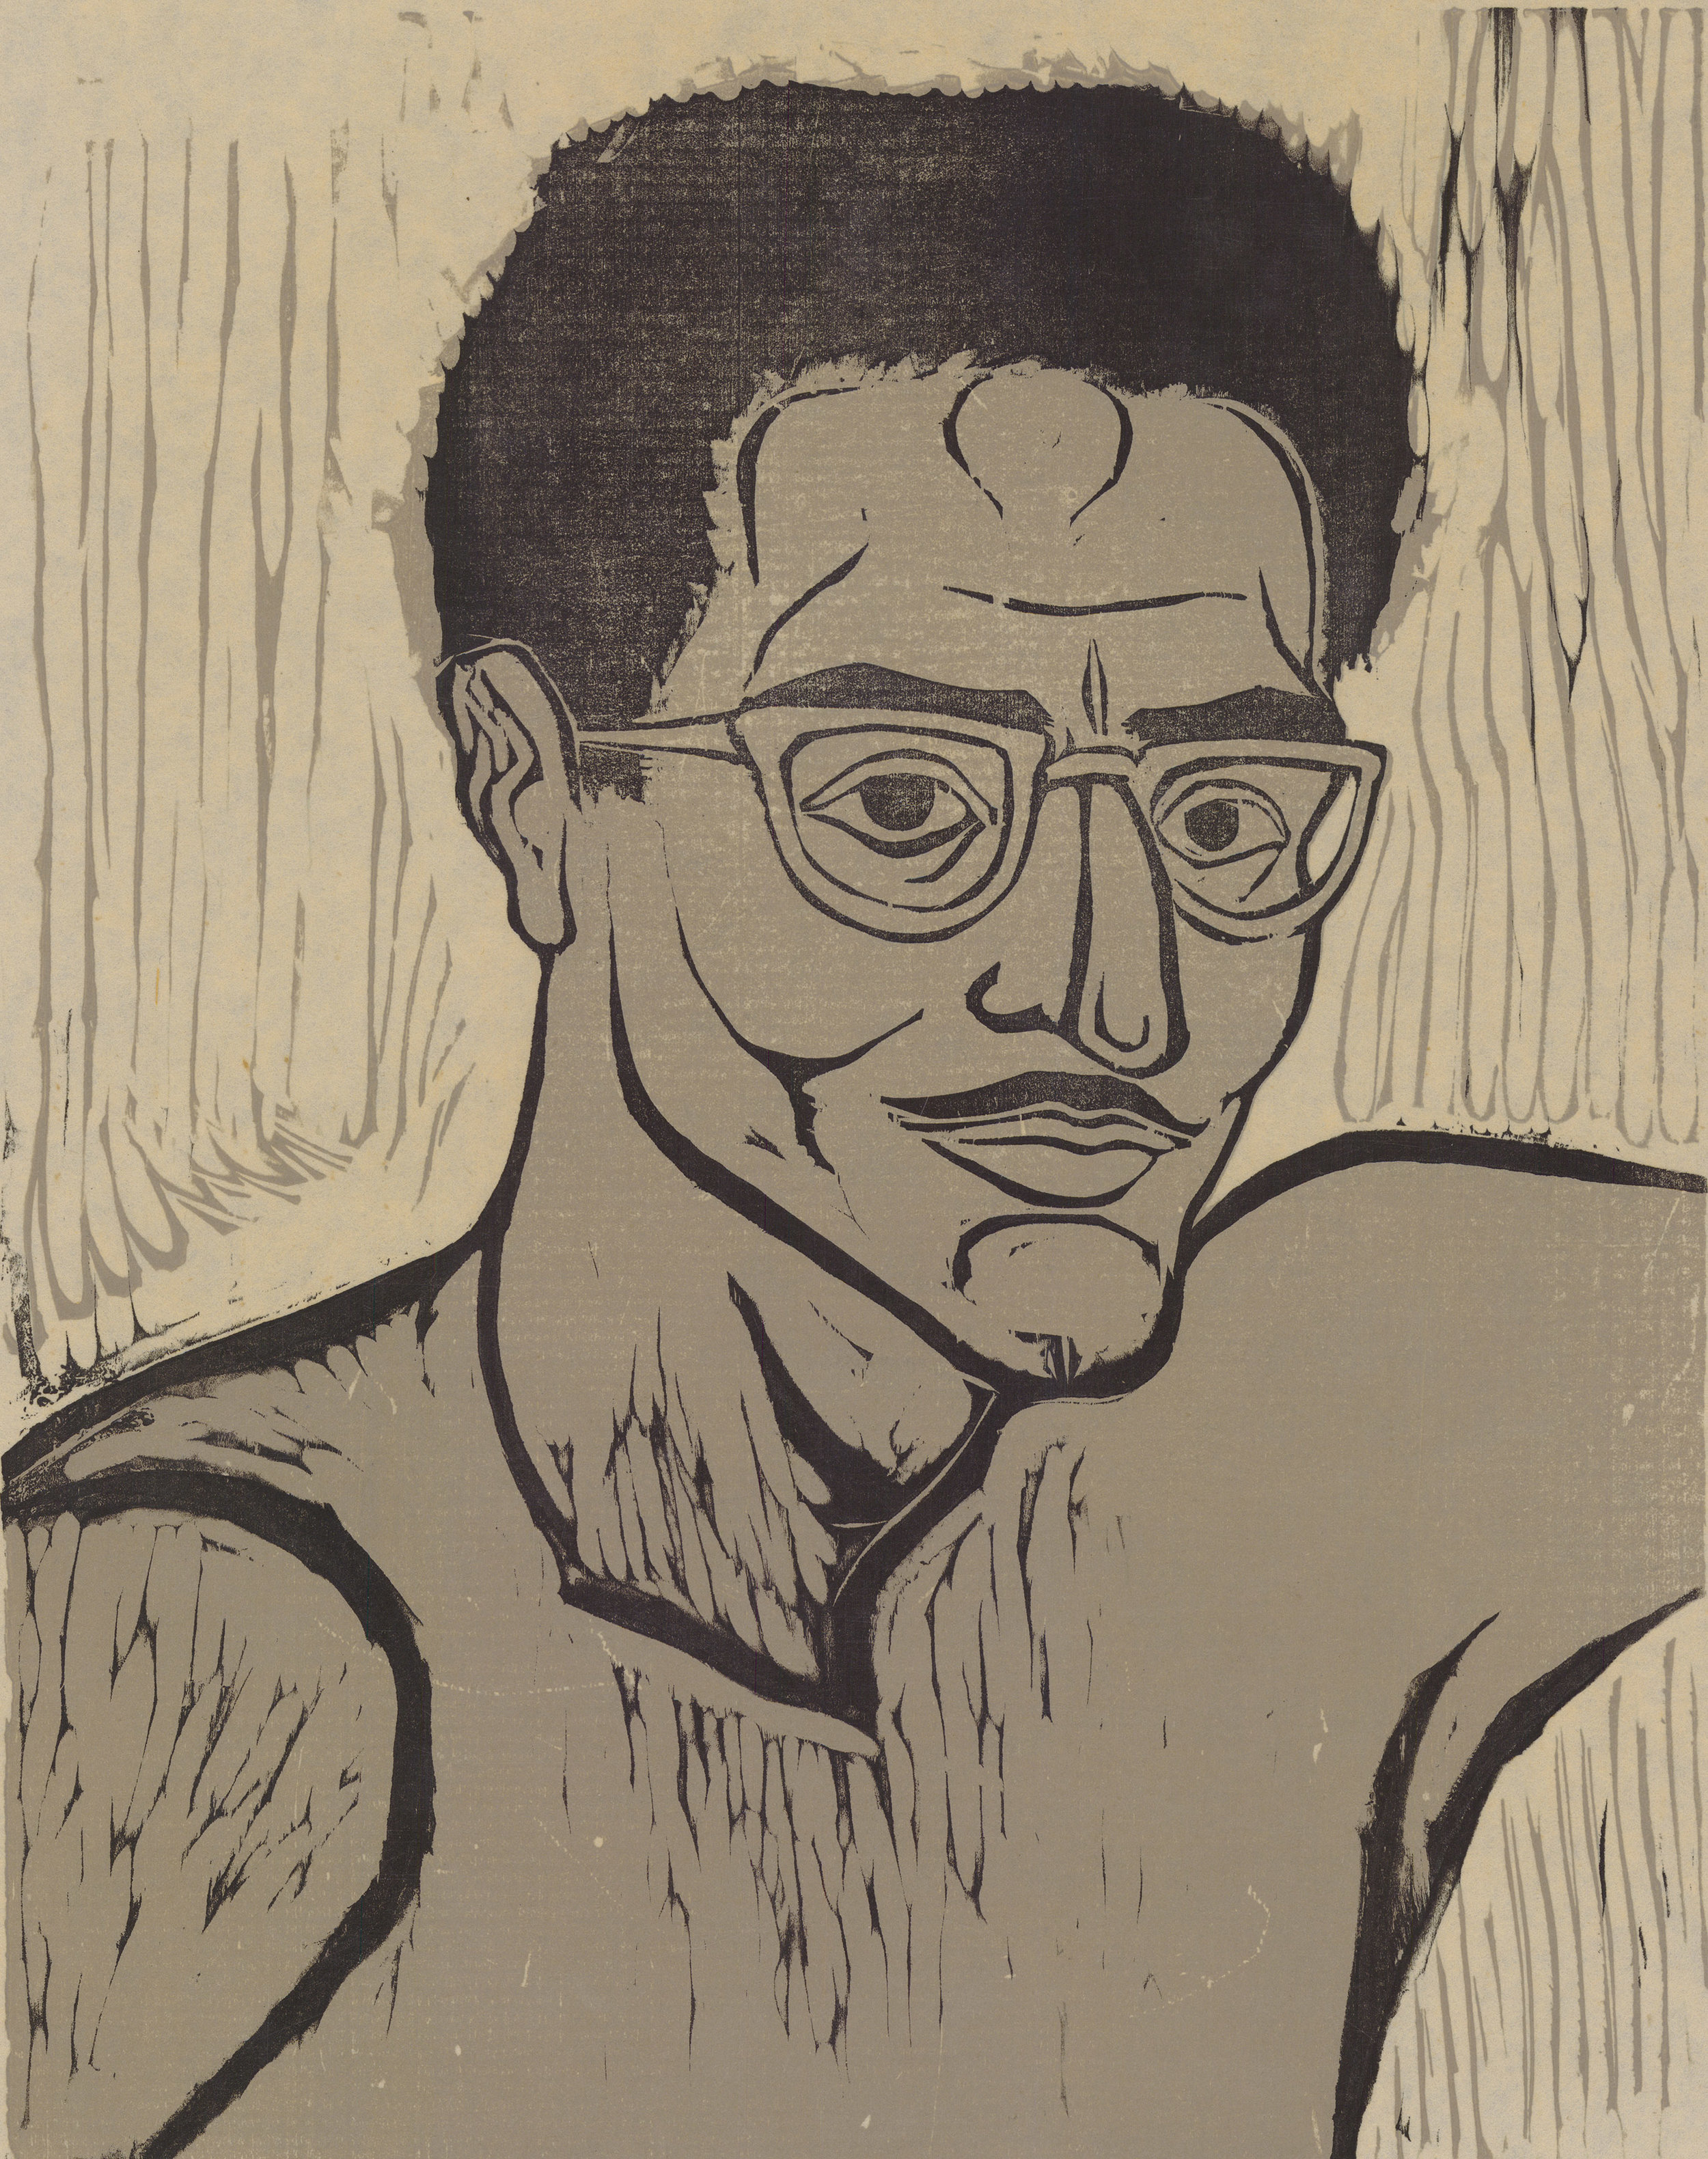 Self-Portrait. 1954.